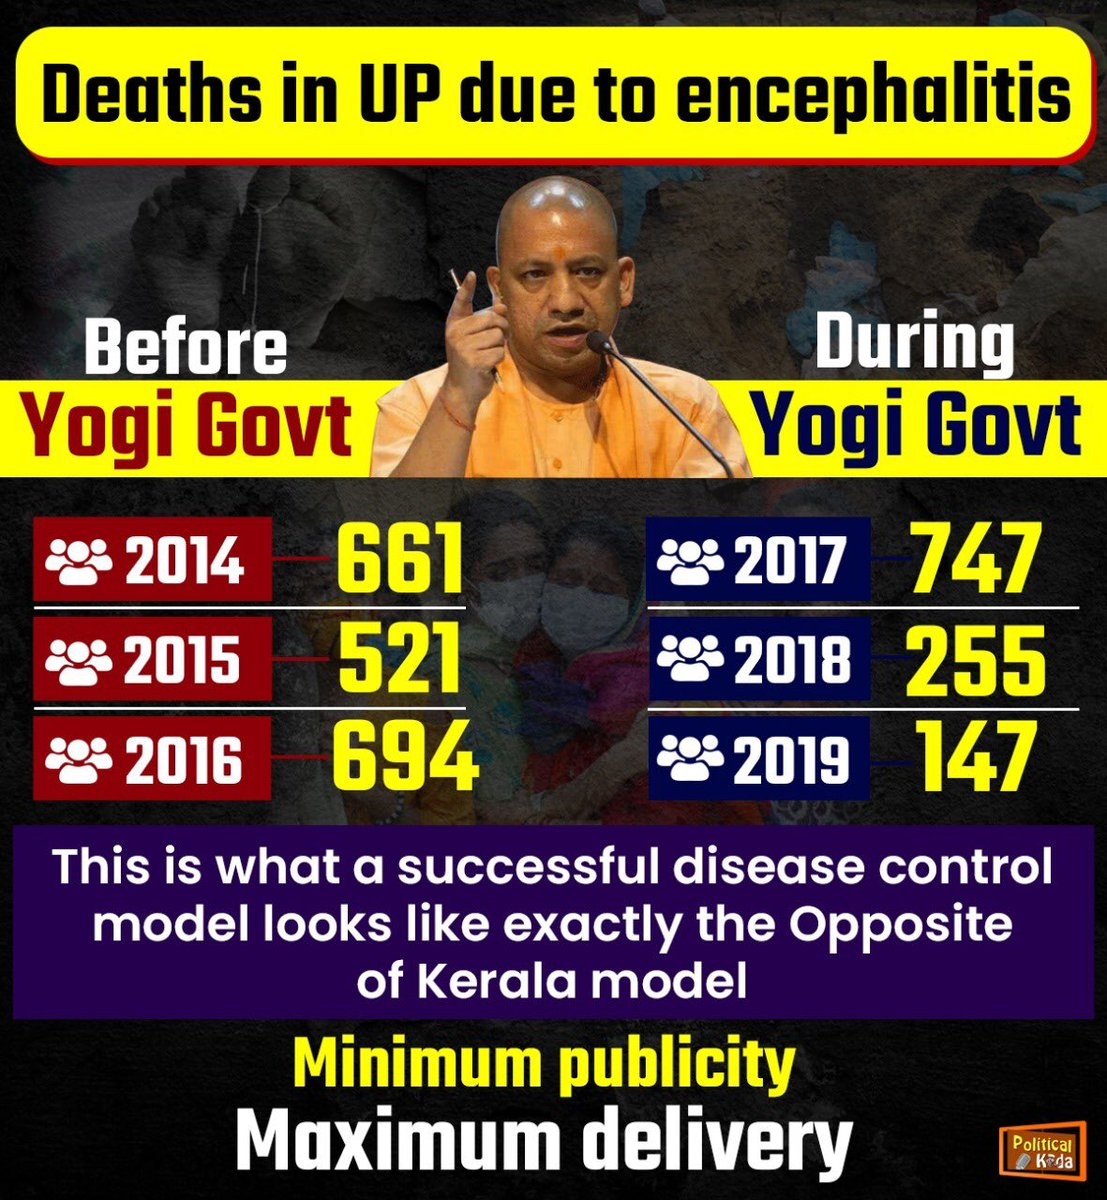 One of th super super achievement of Yogi regarding removing and control encephalitis disease . But media won't talk about this now